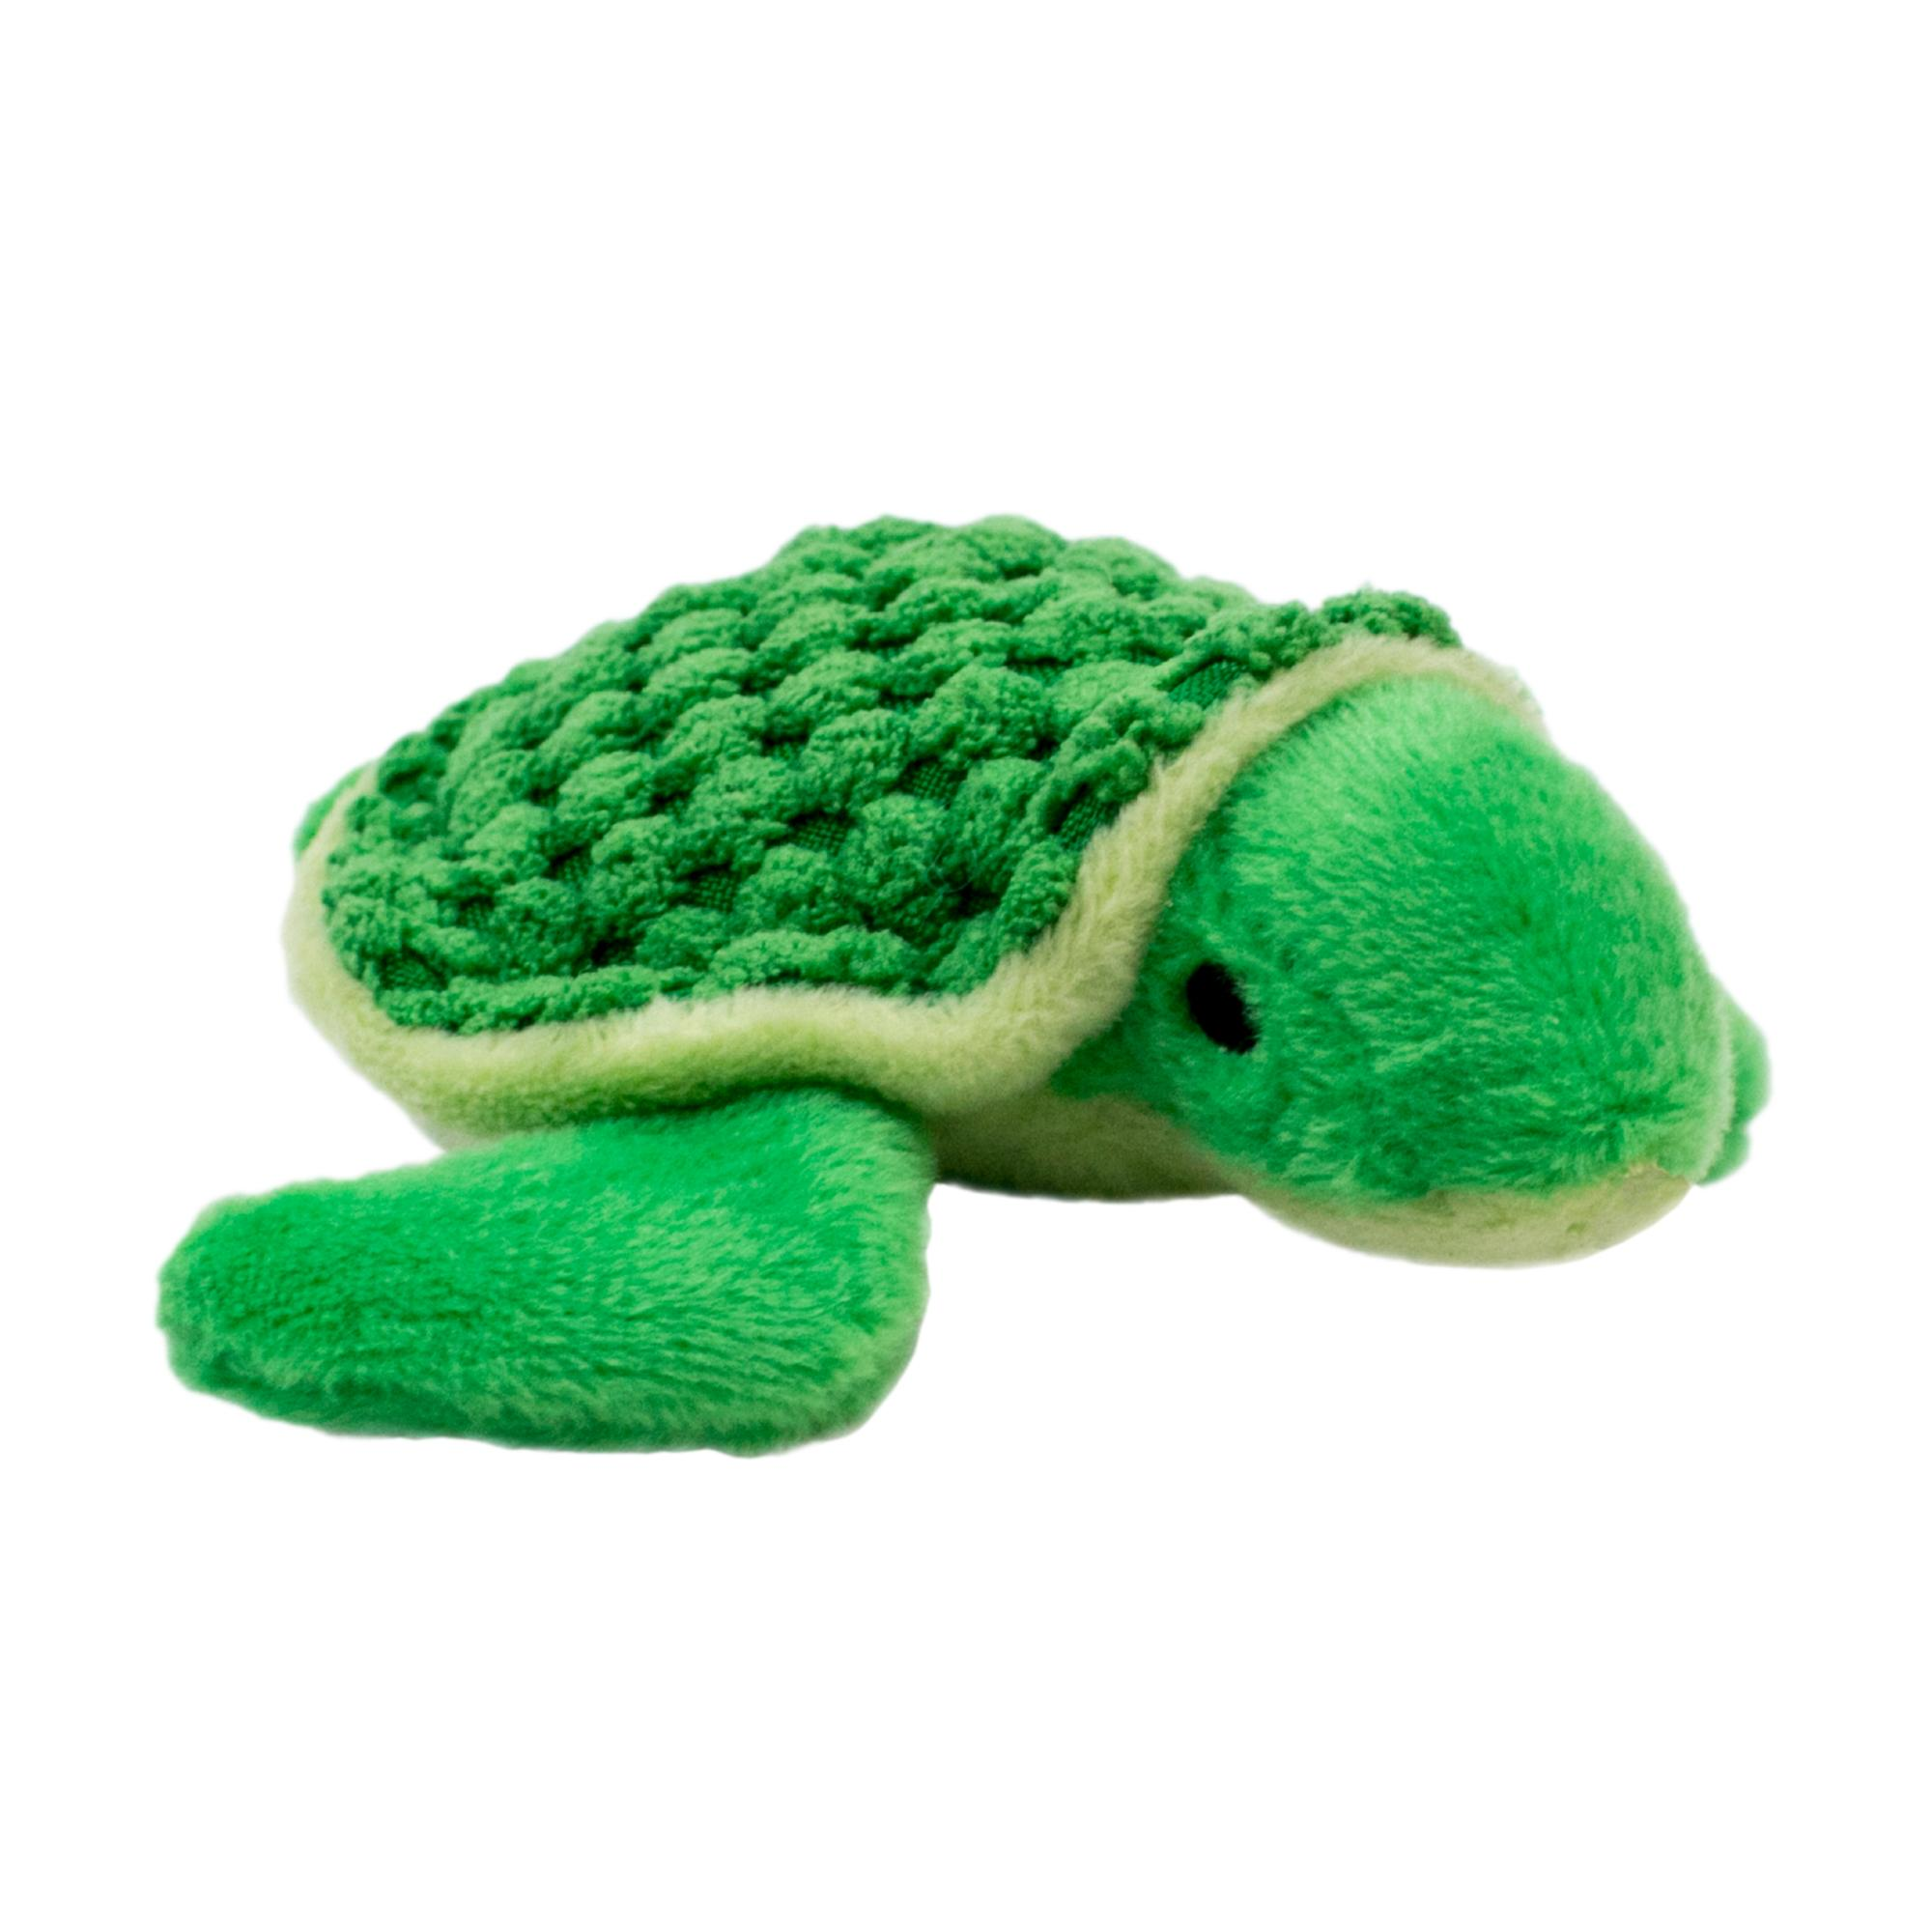 Tall Tails Baby Turtle with Squeaker Plush Dog Toy, 4-in